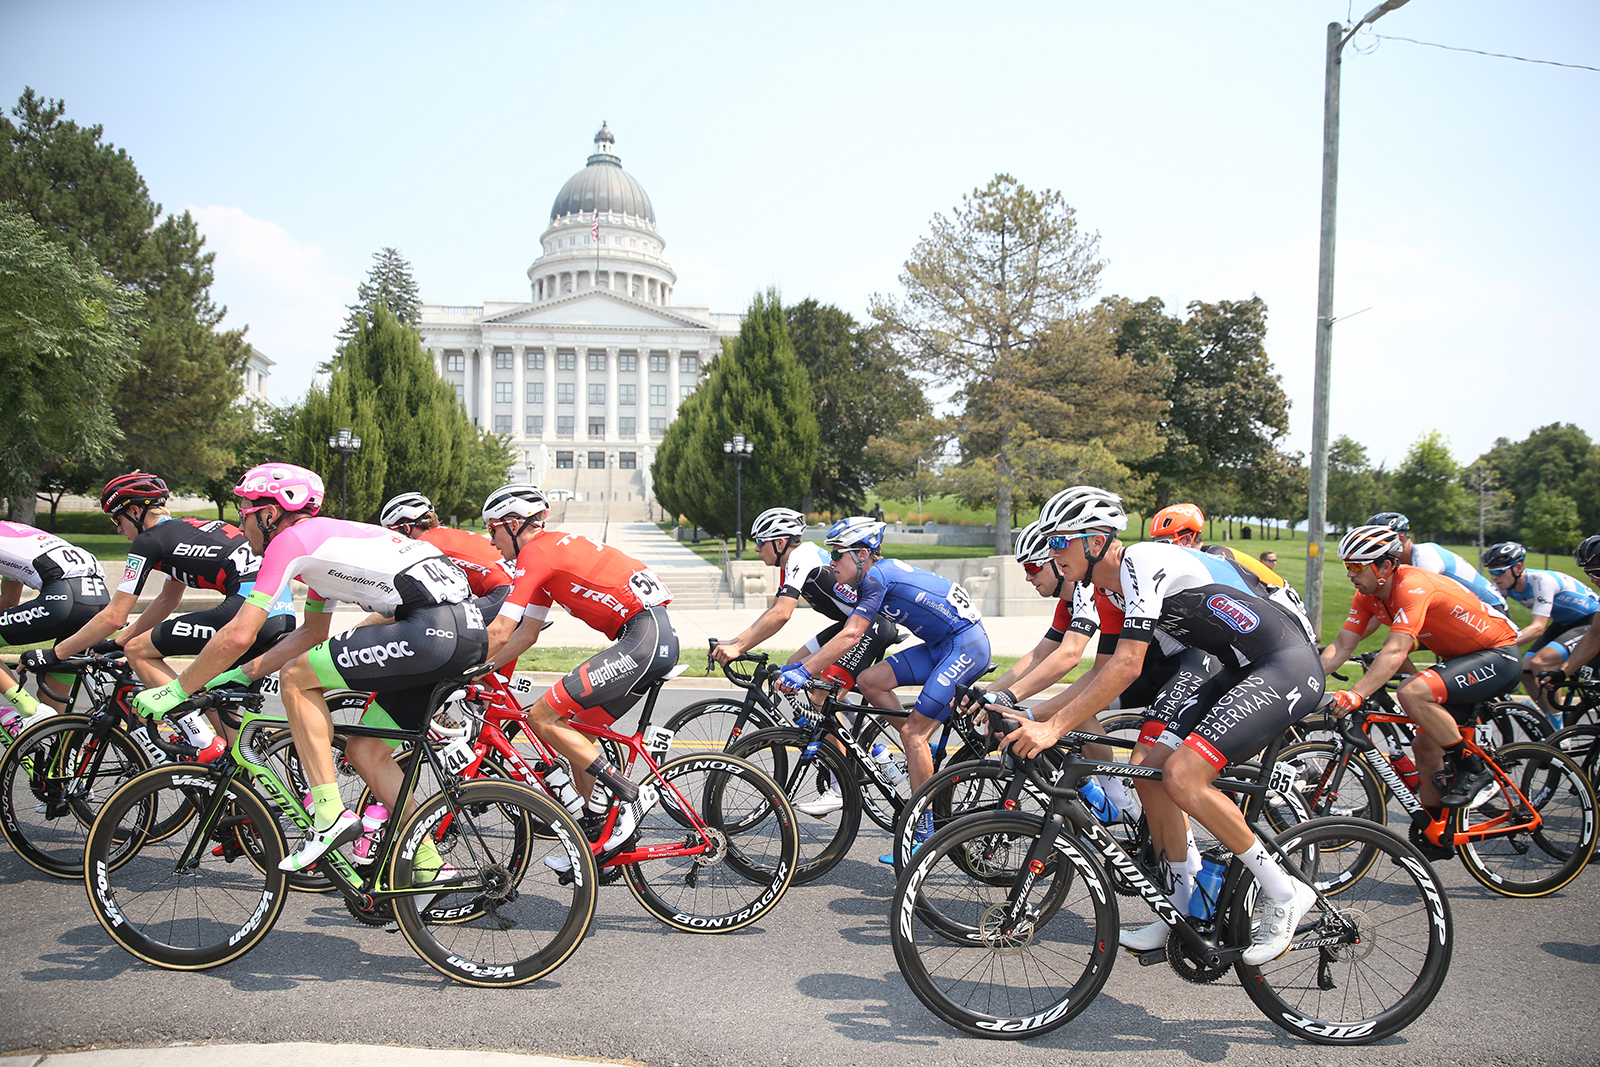 The peloton raced around the Capitol.  2018 Tour of Utah Stage 4, August 8, 2018, Salt Lake City, Utah. Photo by Cathy Fegan-Kim, cottonsoxphotography.net